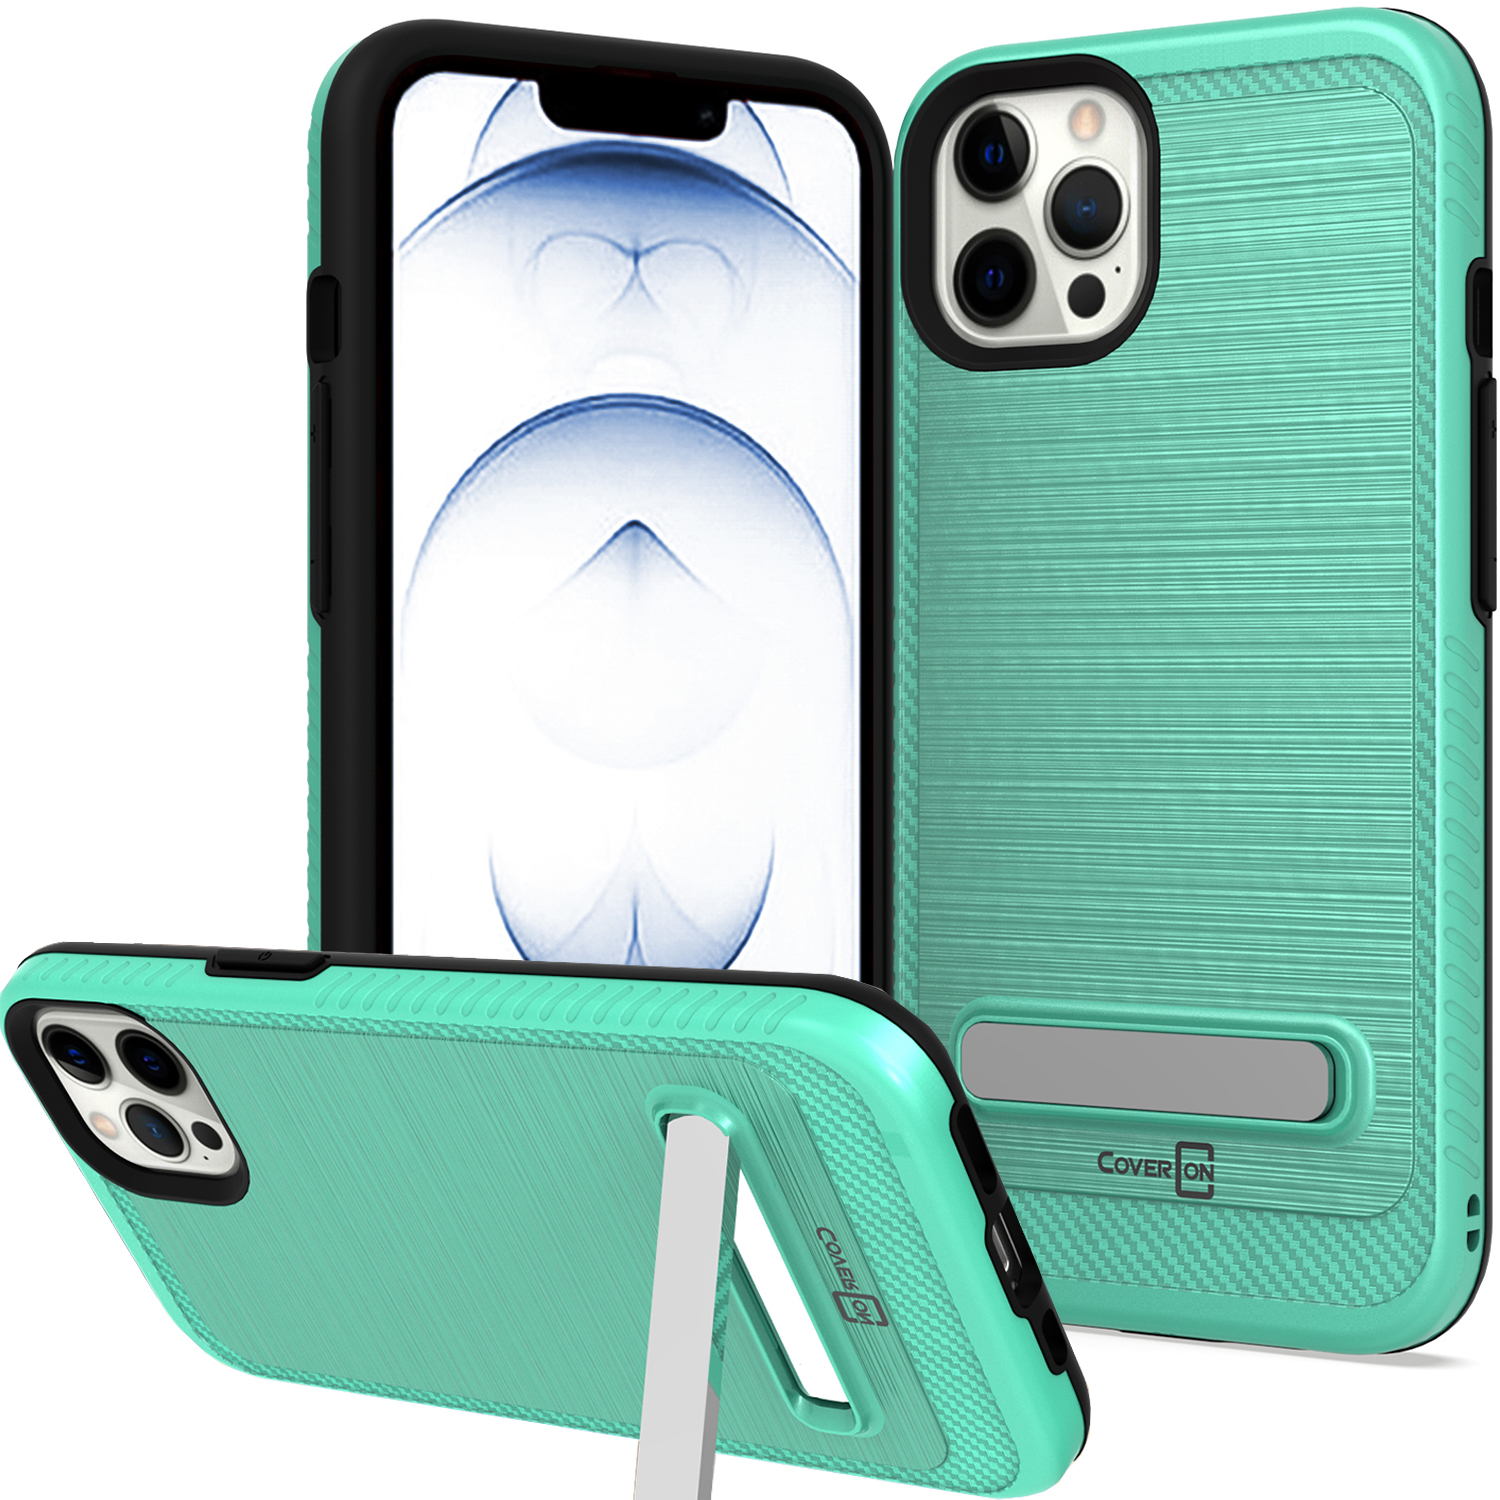 Vivo zte n817 legacy phone case your space